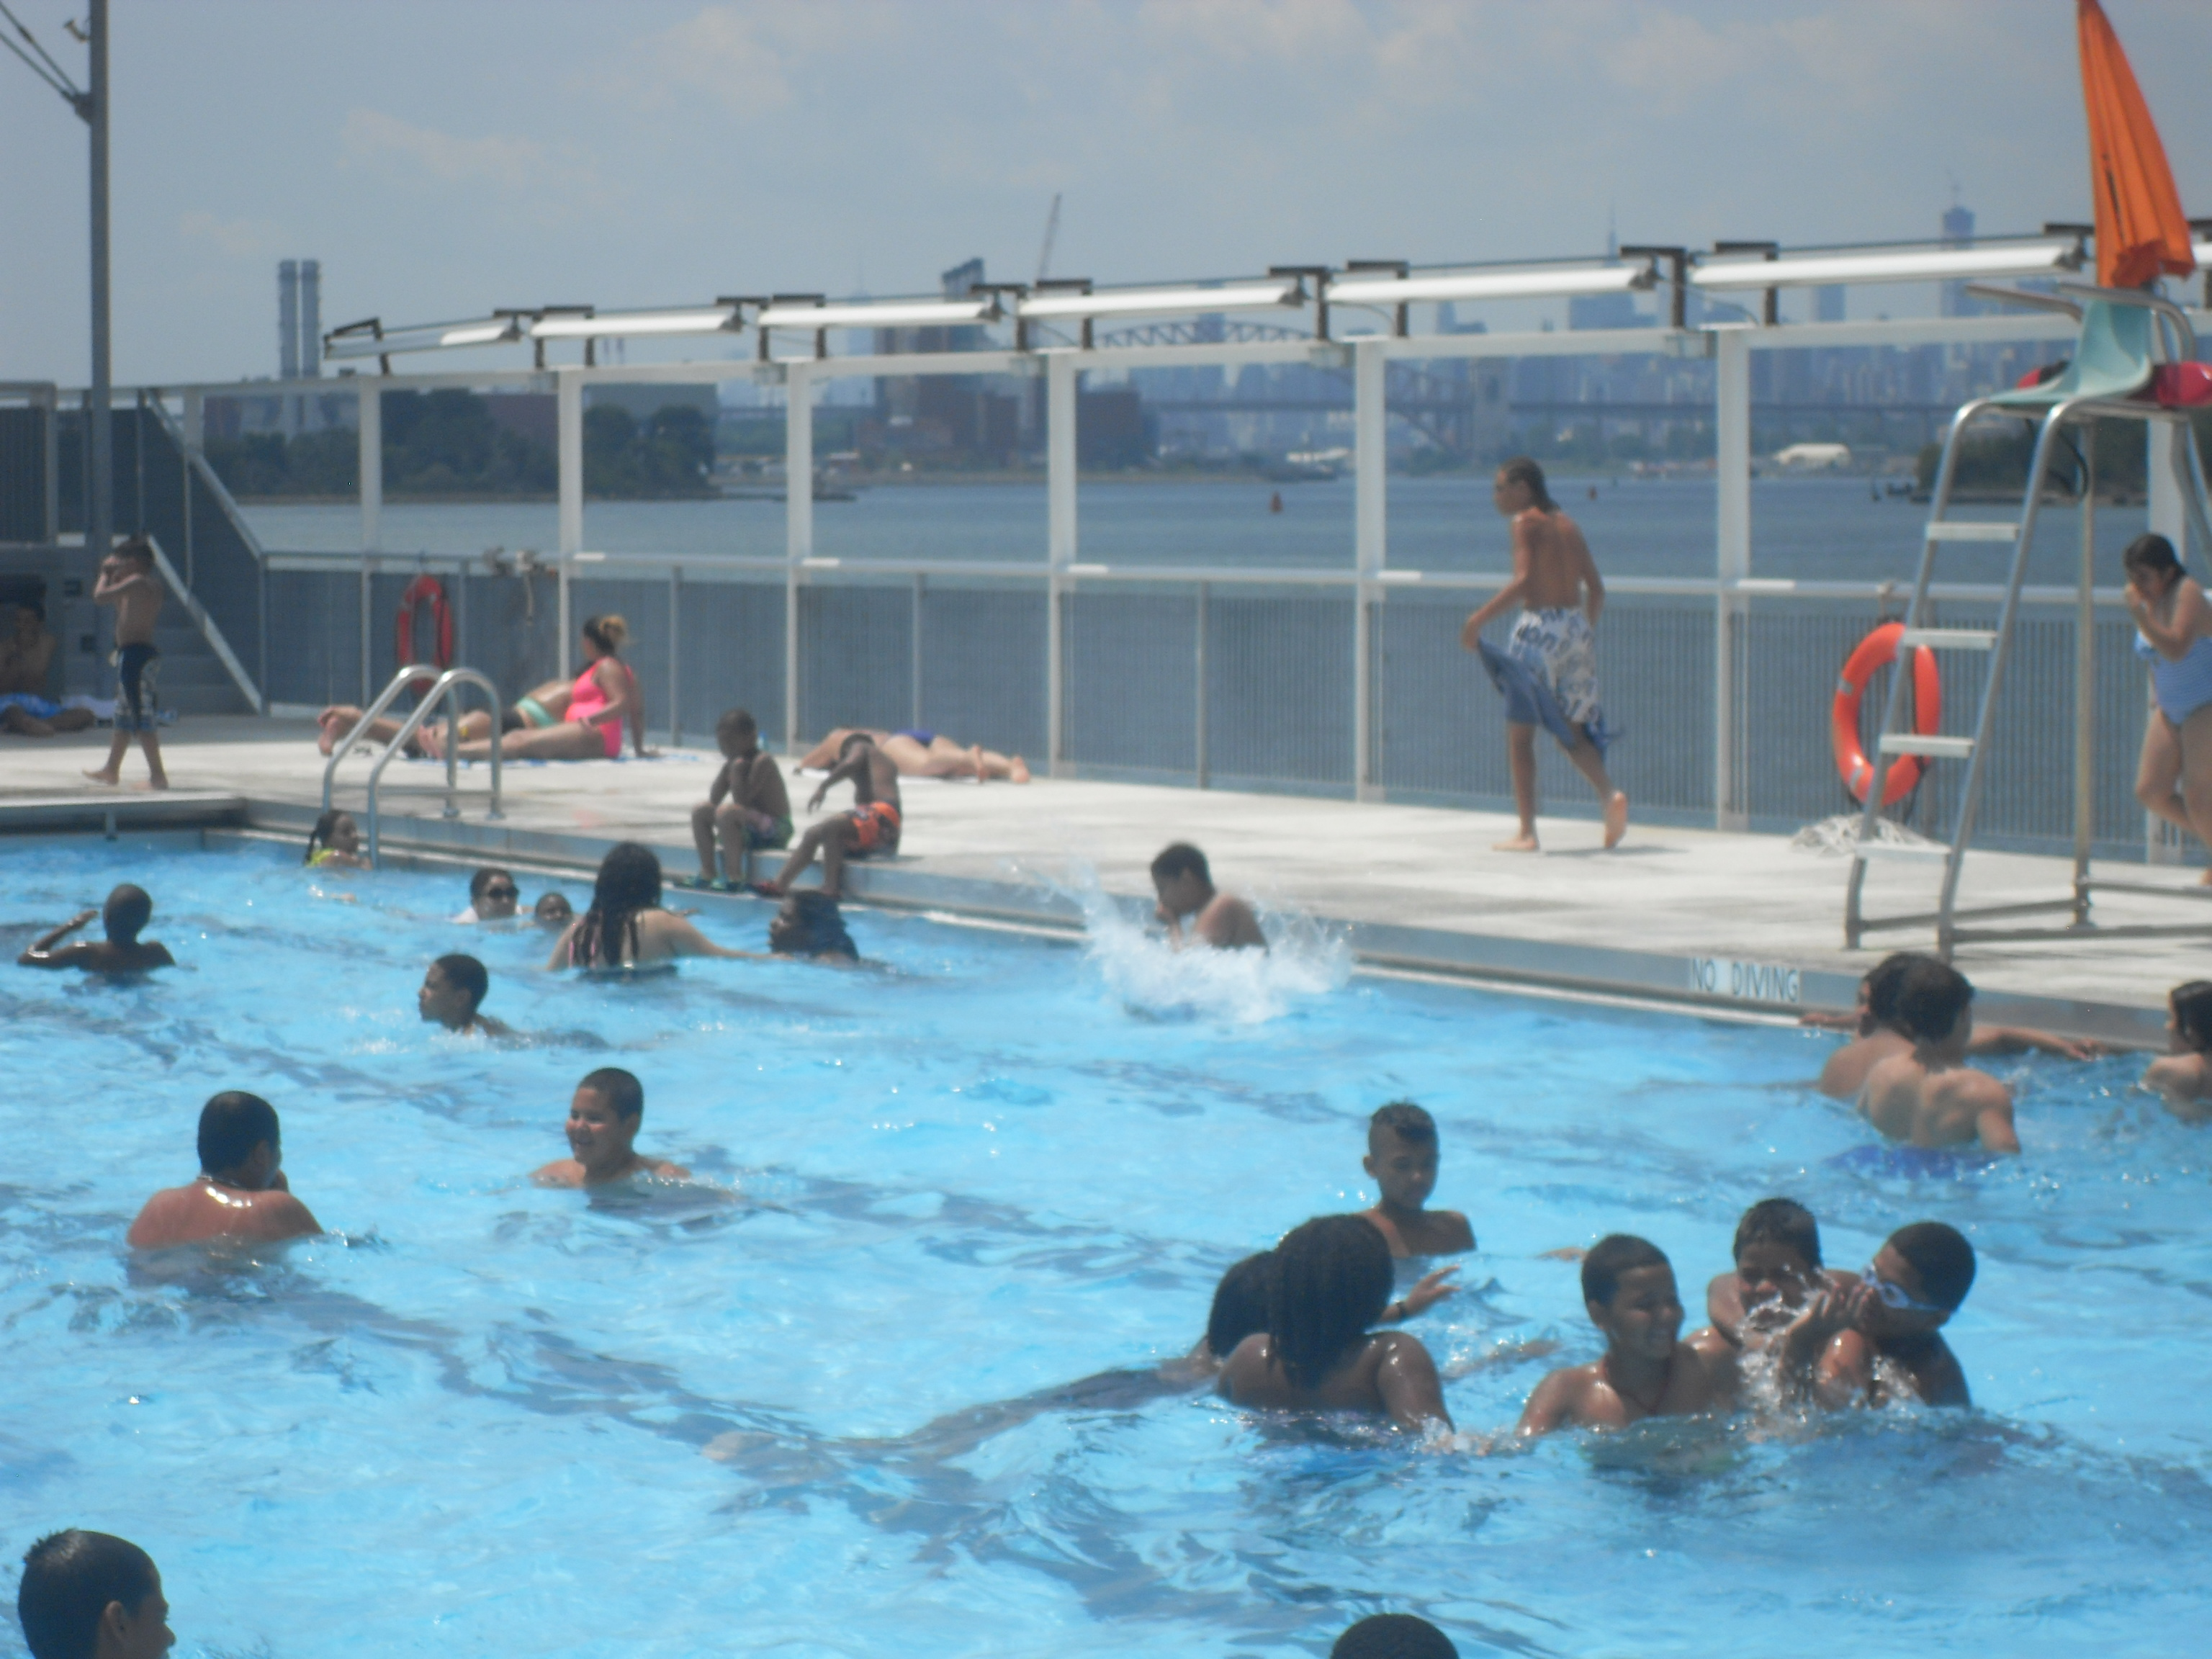 Floating Pool Lady reopens